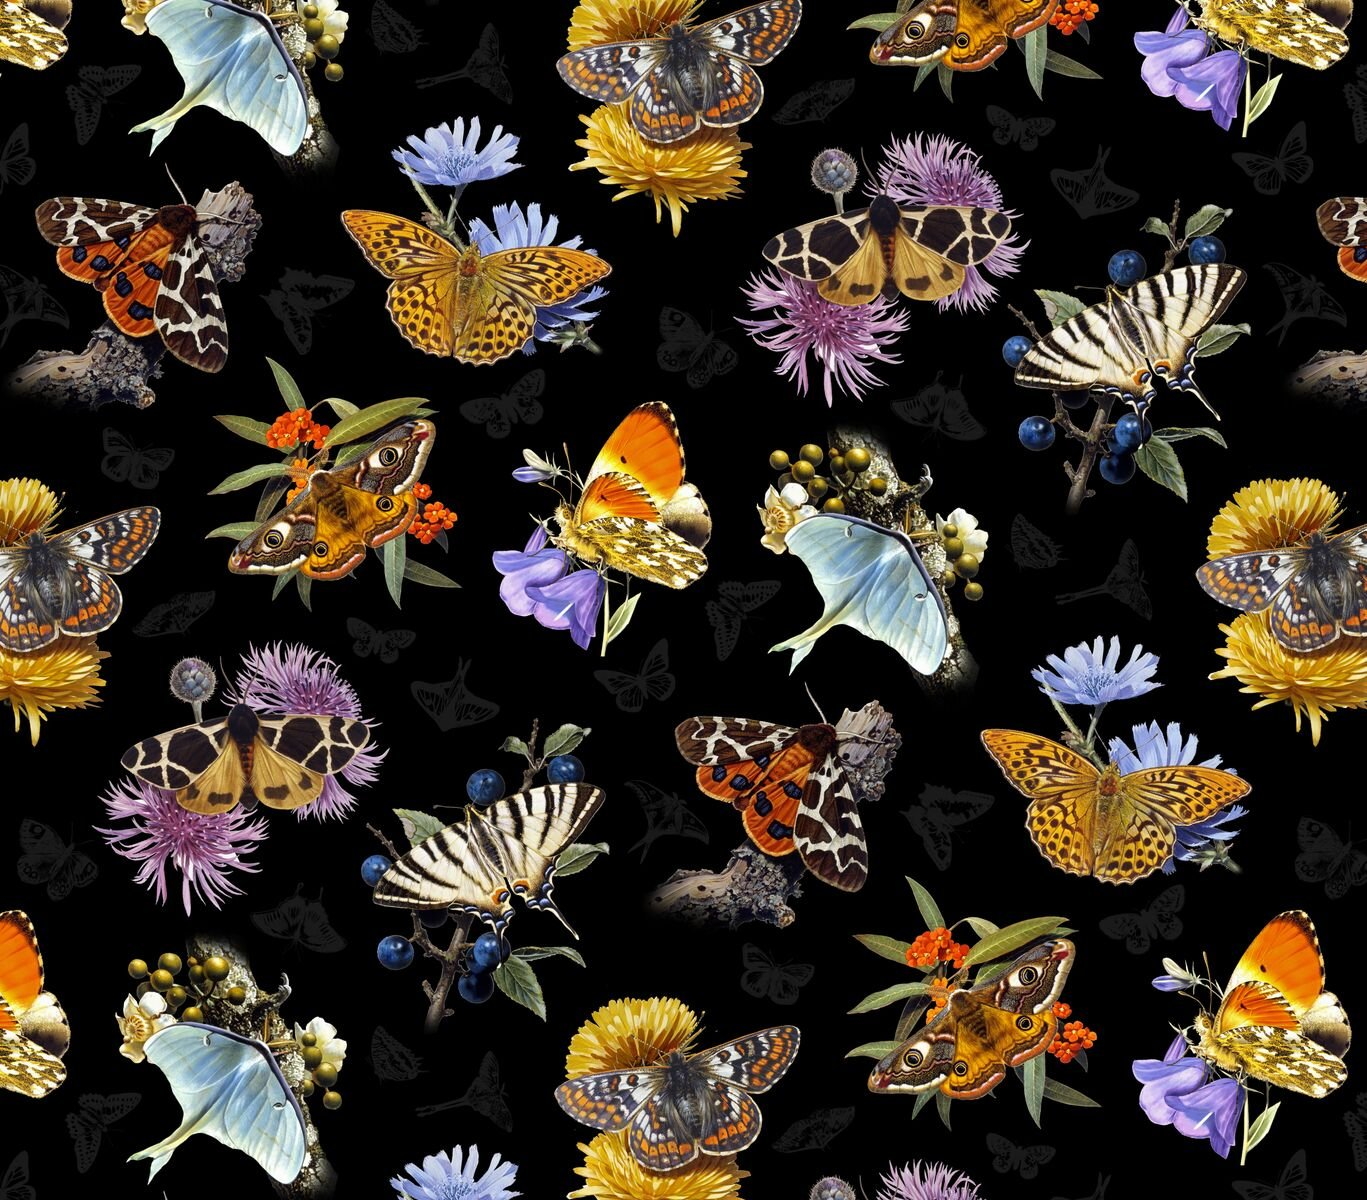 ES-Butterflies and Moths 9801 Butterflies, Moths, Flowers - Black